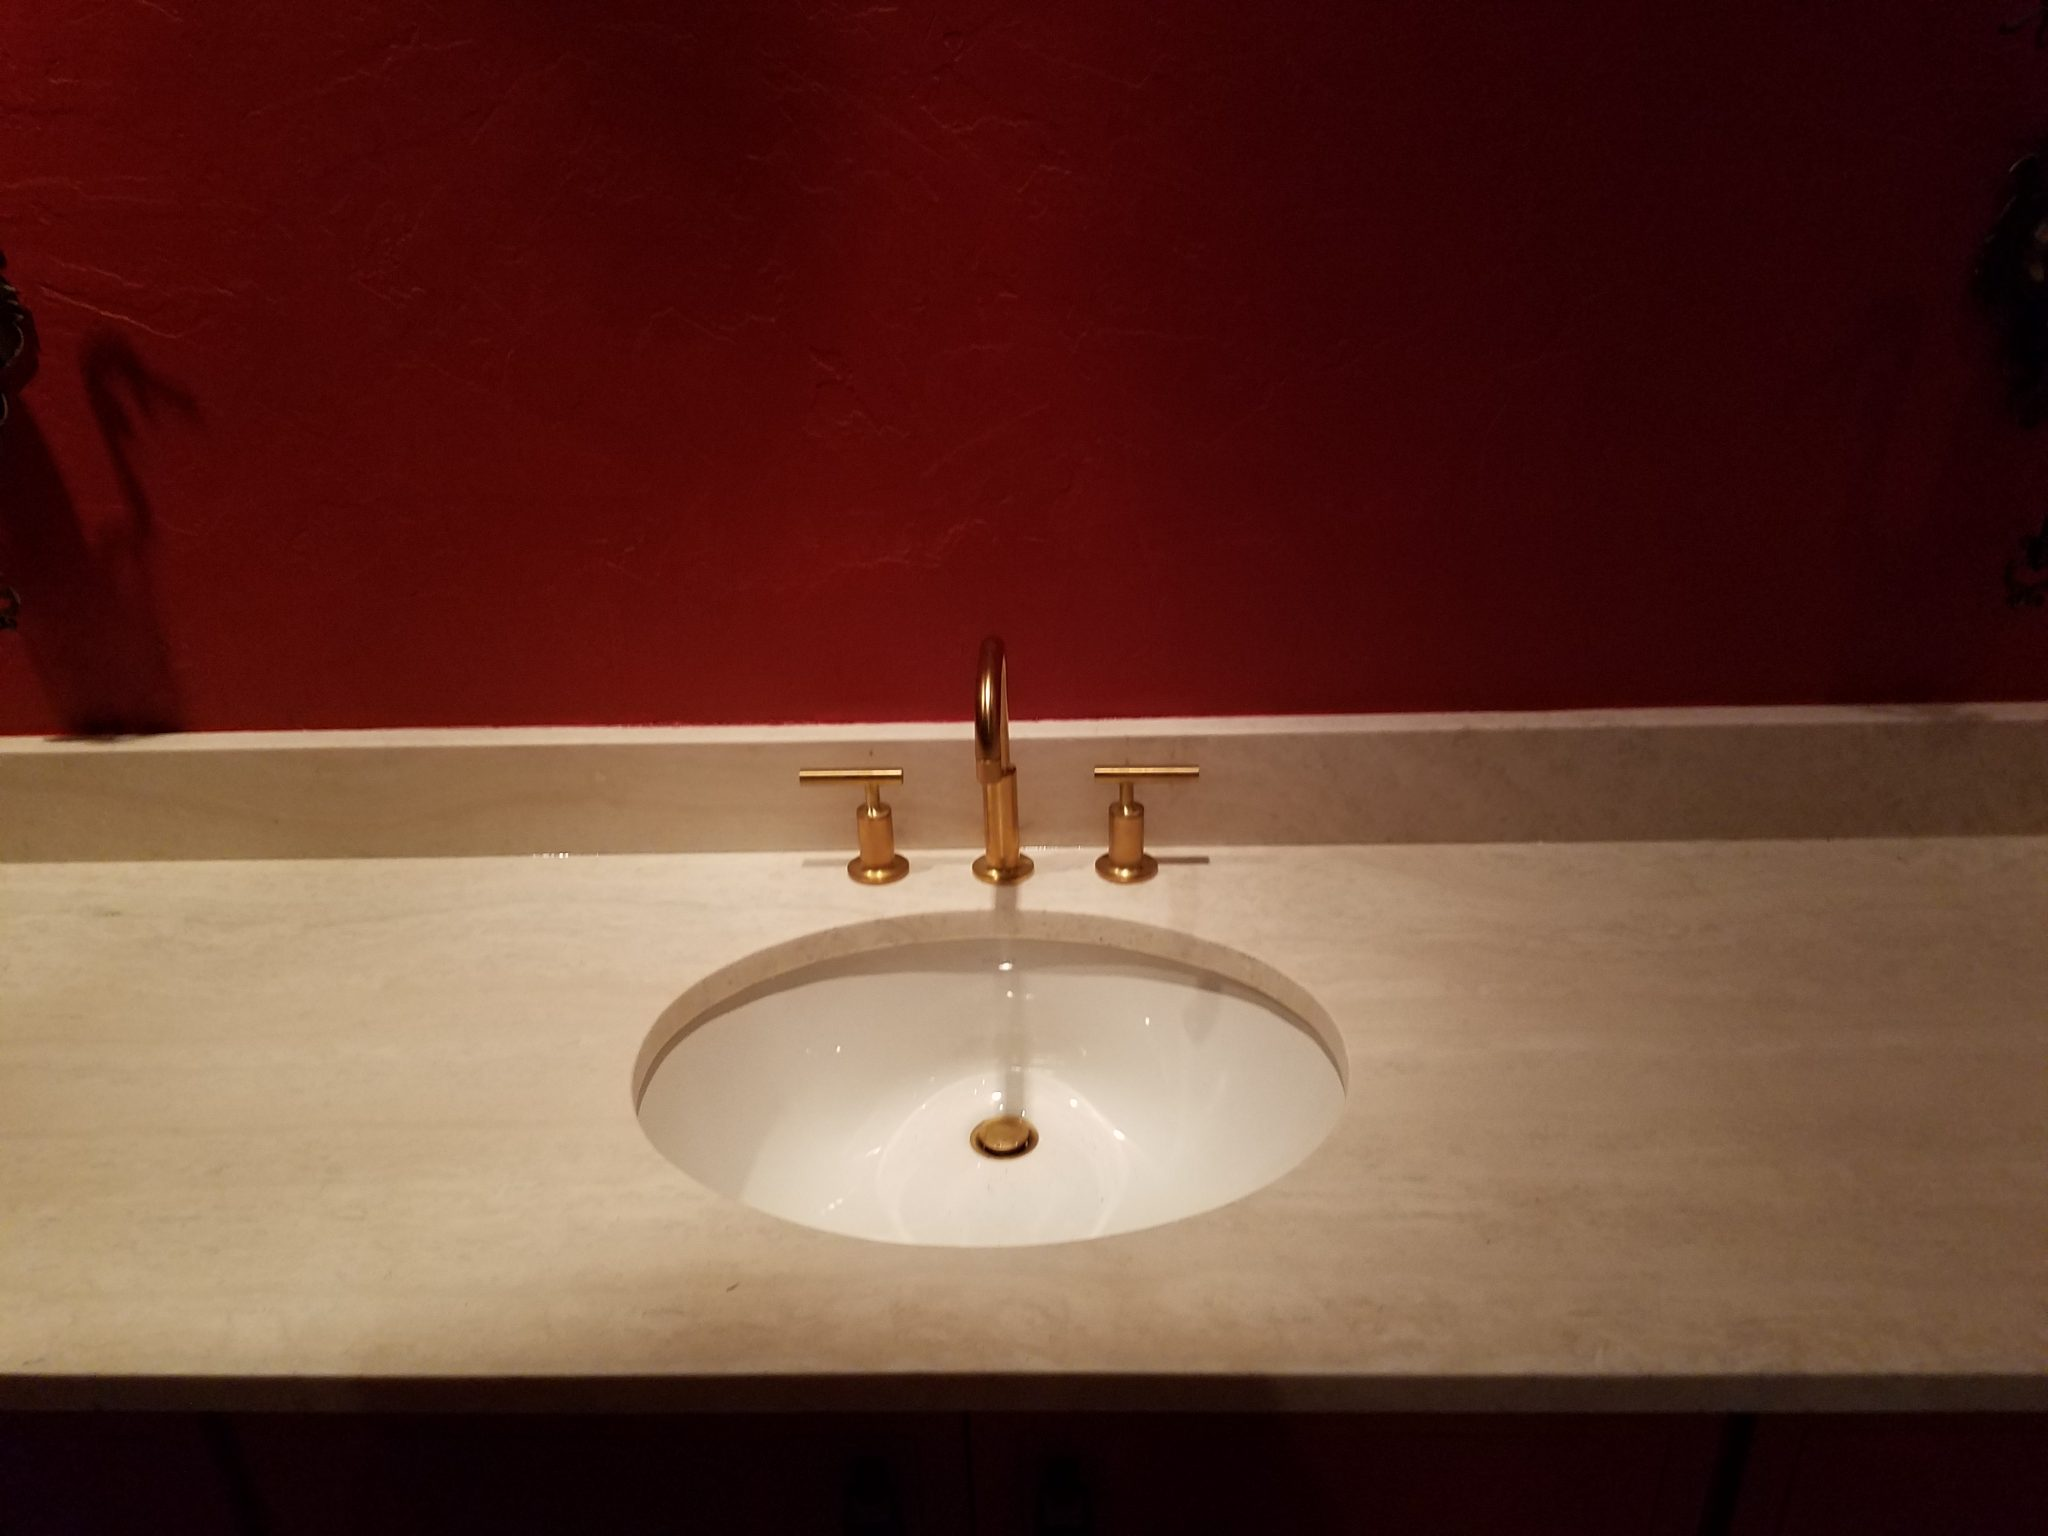 San antonio bathroom remodel - Having Your Bathroom Remodeled By Bryco Plumbing Can Make A Big Impact To Your Comfort Level And Not To Mention Its Resale Value When Trying To Design Your